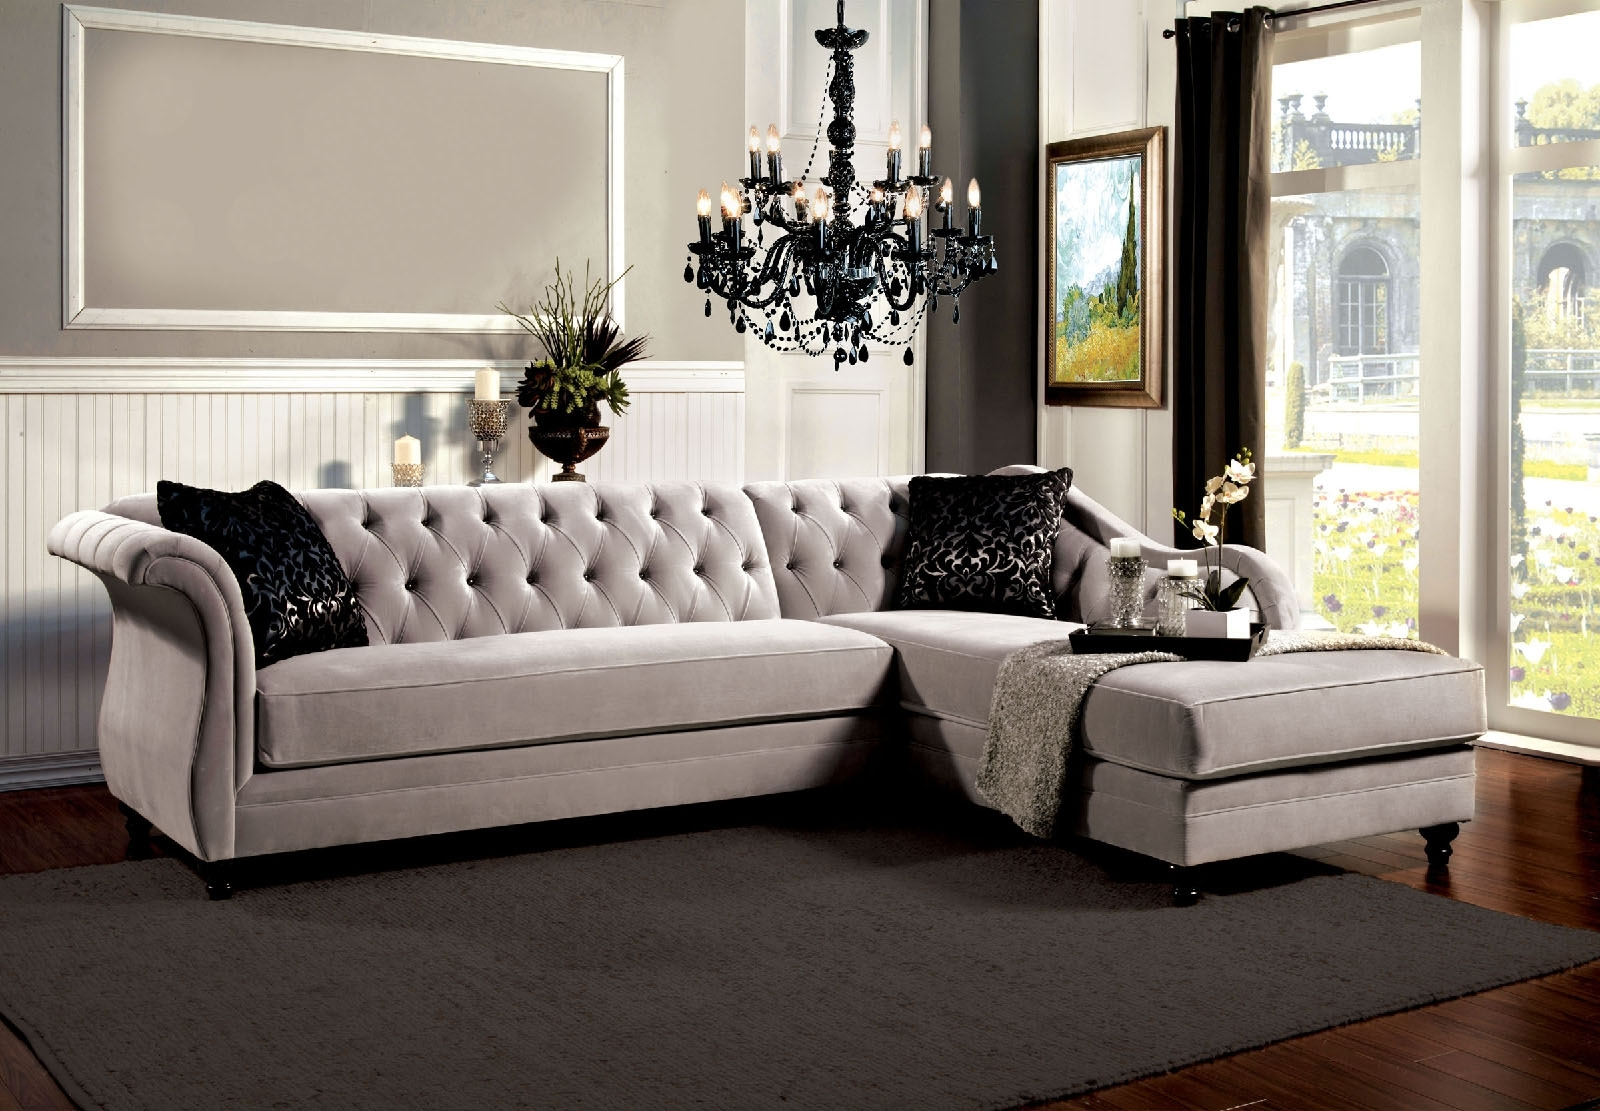 Grey Vintage Tufted Sectional Sofa With Vintage Sectional Sofas (View 7 of 10)